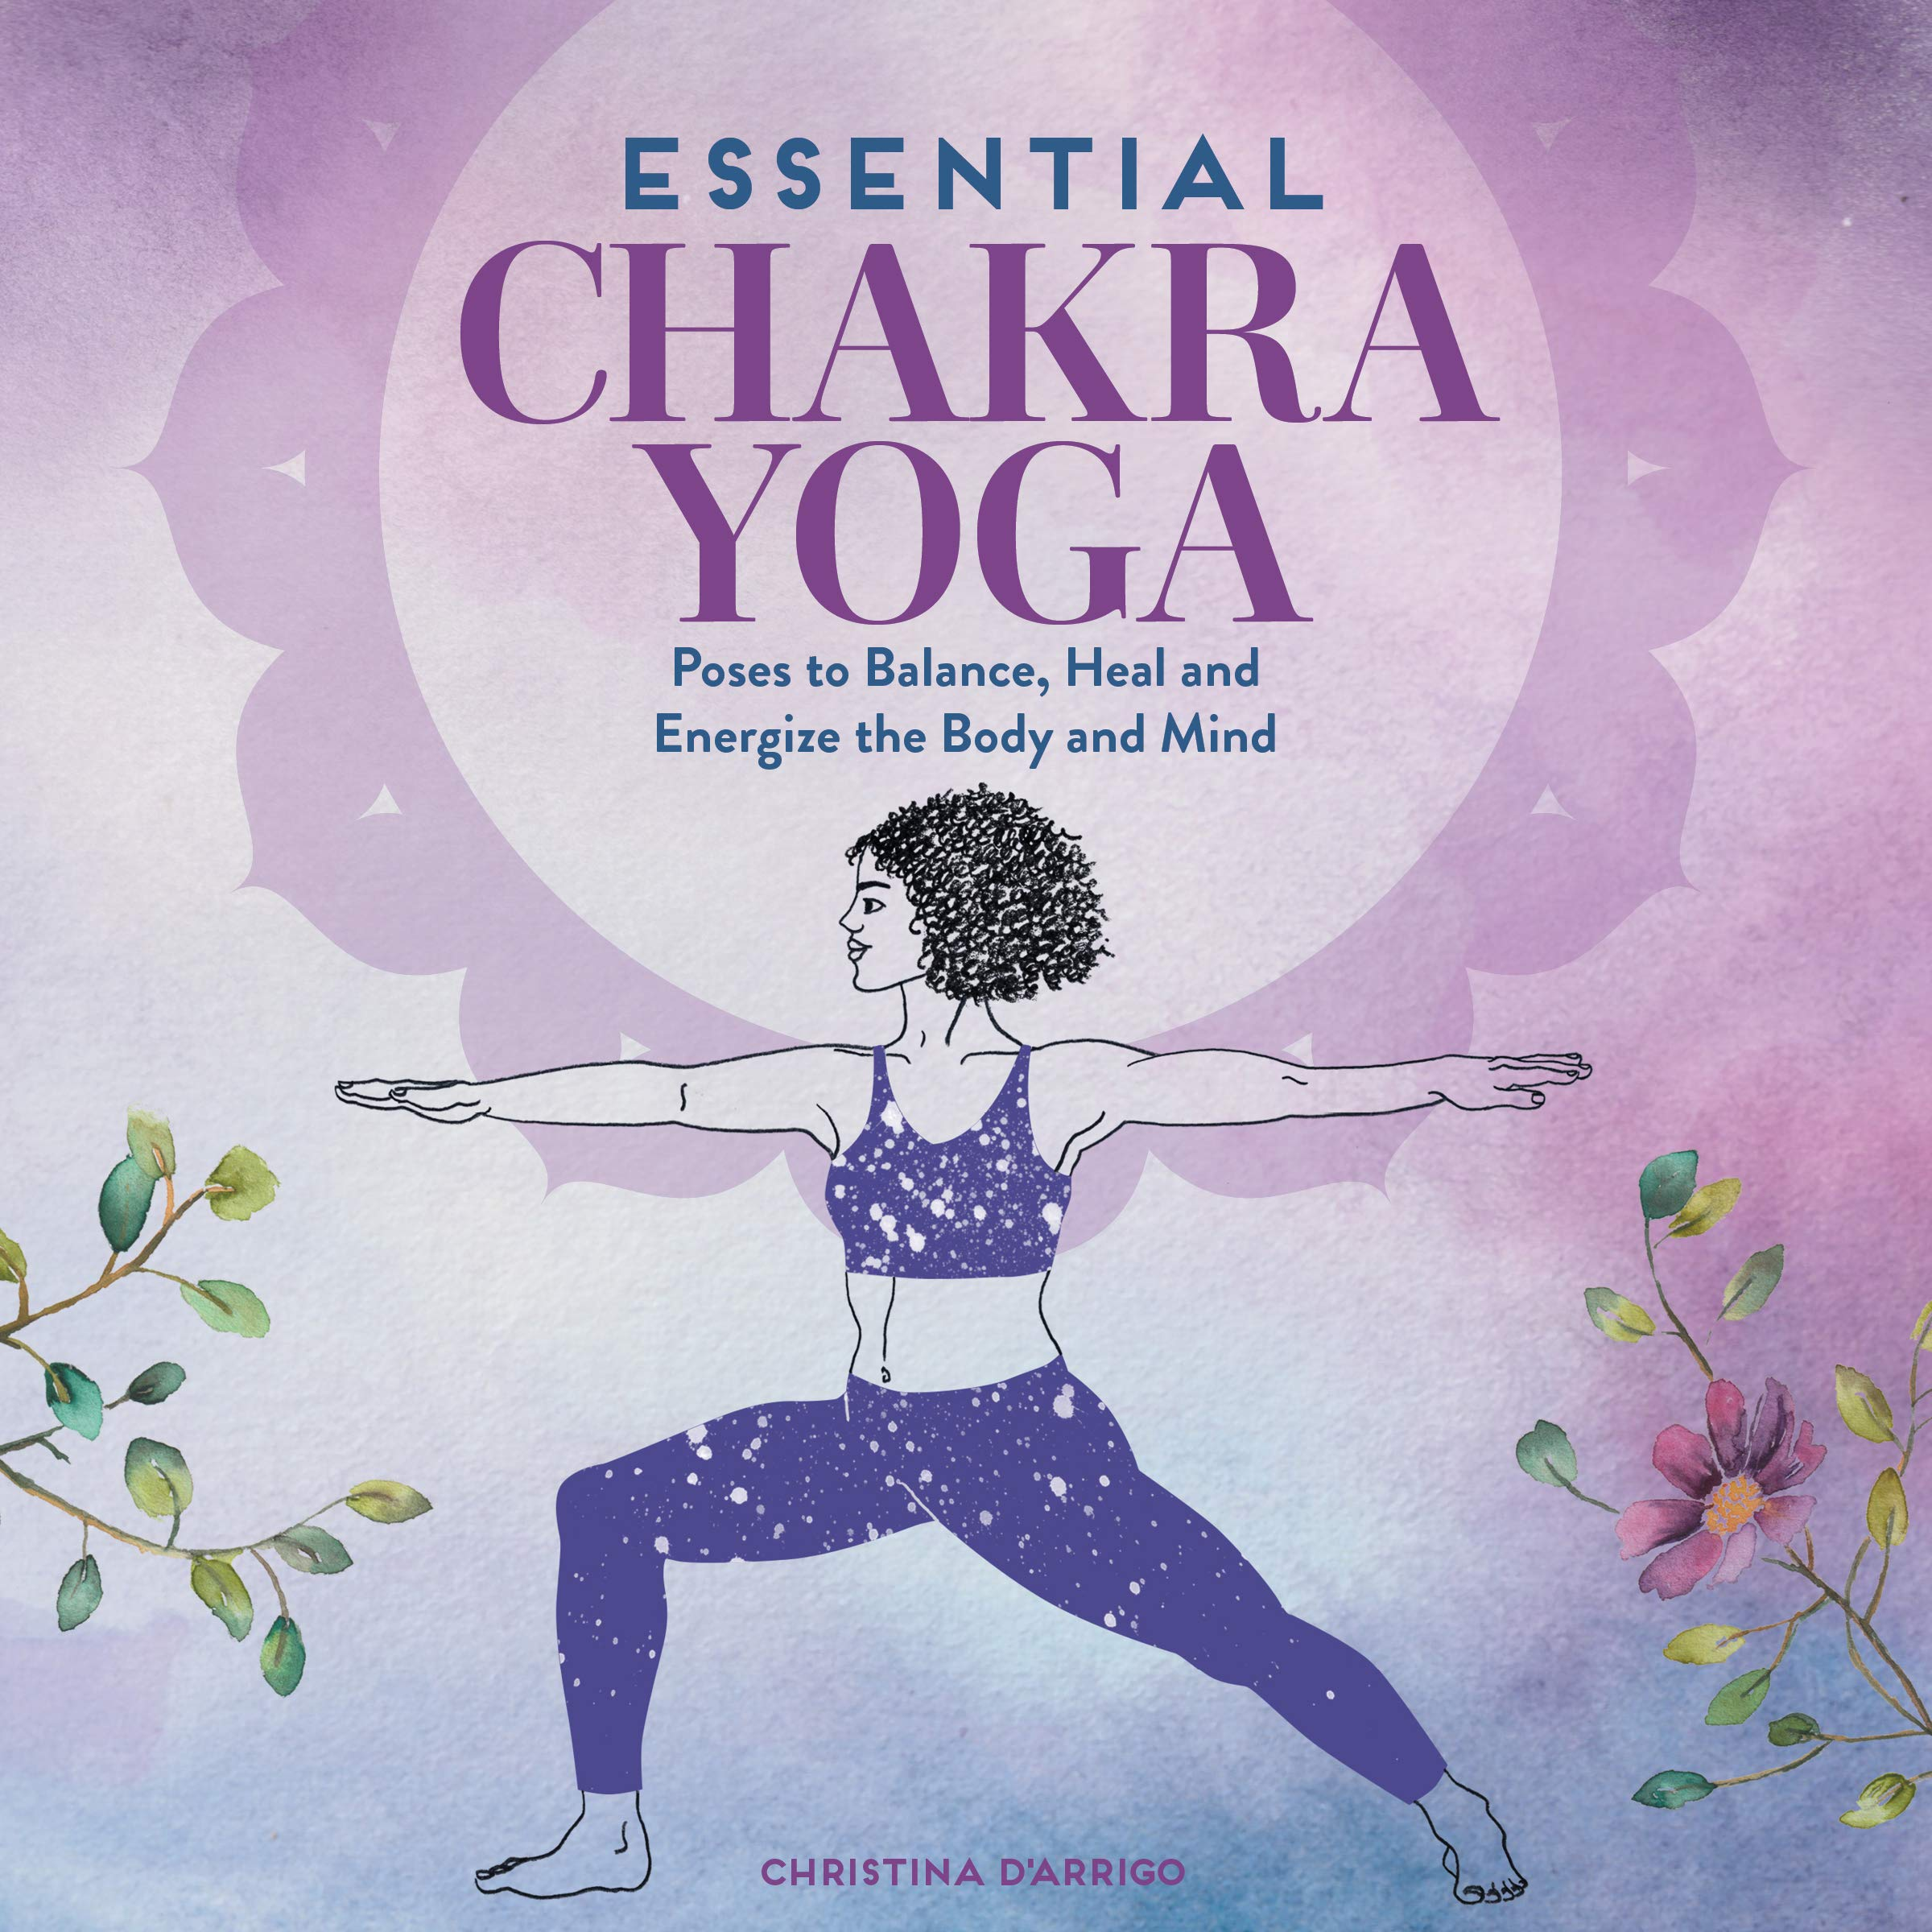 Essential Chakra Yoga: Poses to Balance, Heal, and Energize the